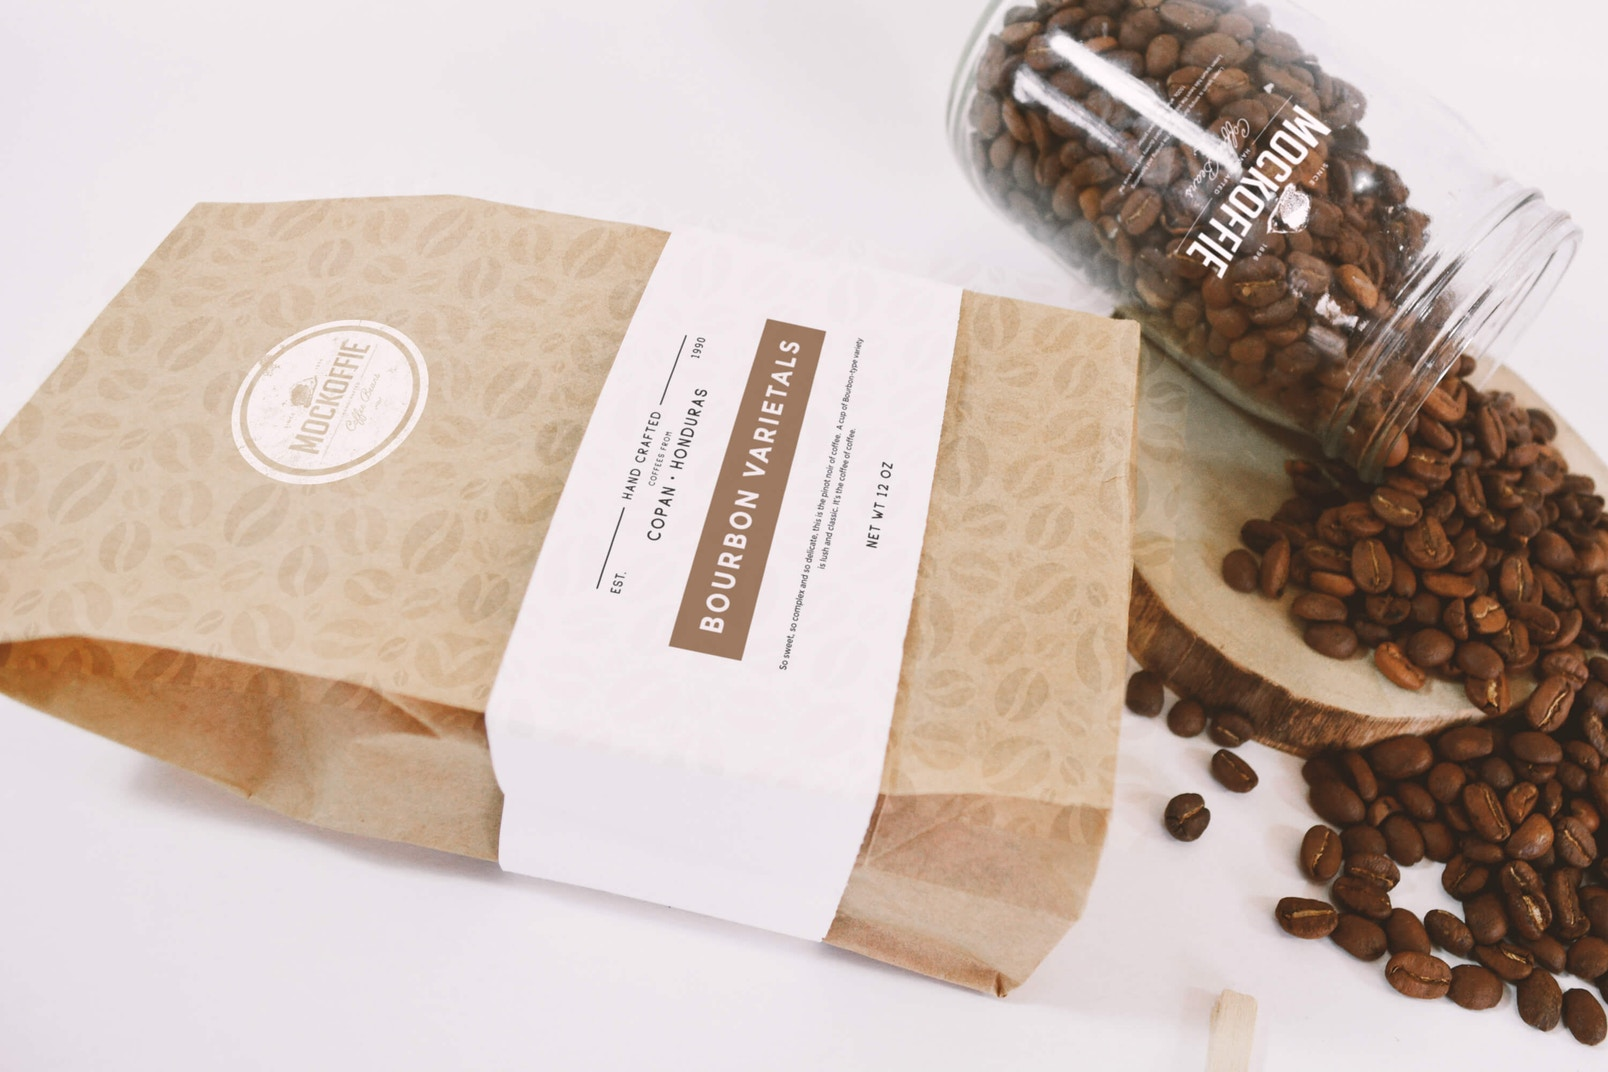 Coffee Bag and Glass Jar Mockup - Perspective Top View